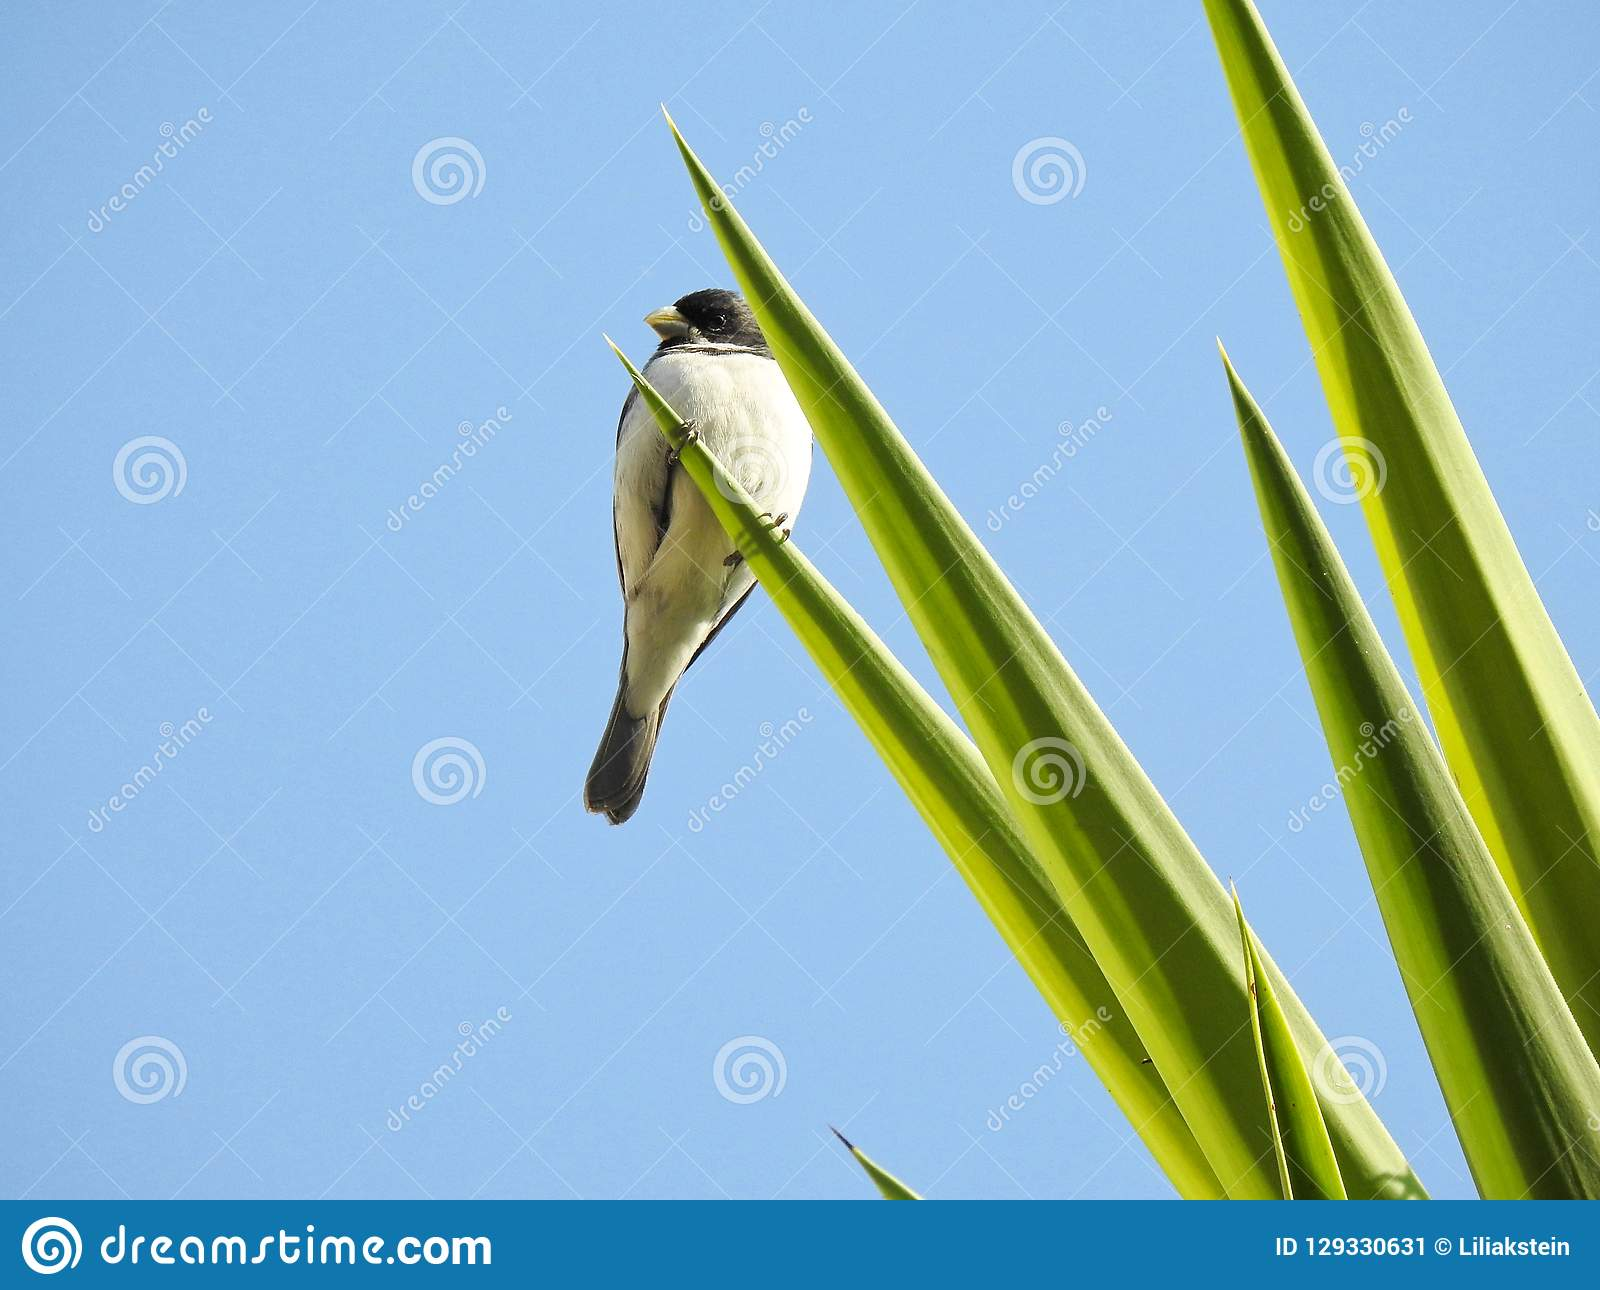 White And Black Bird Perched On Pointed Leaves Of A Tree Stock Image